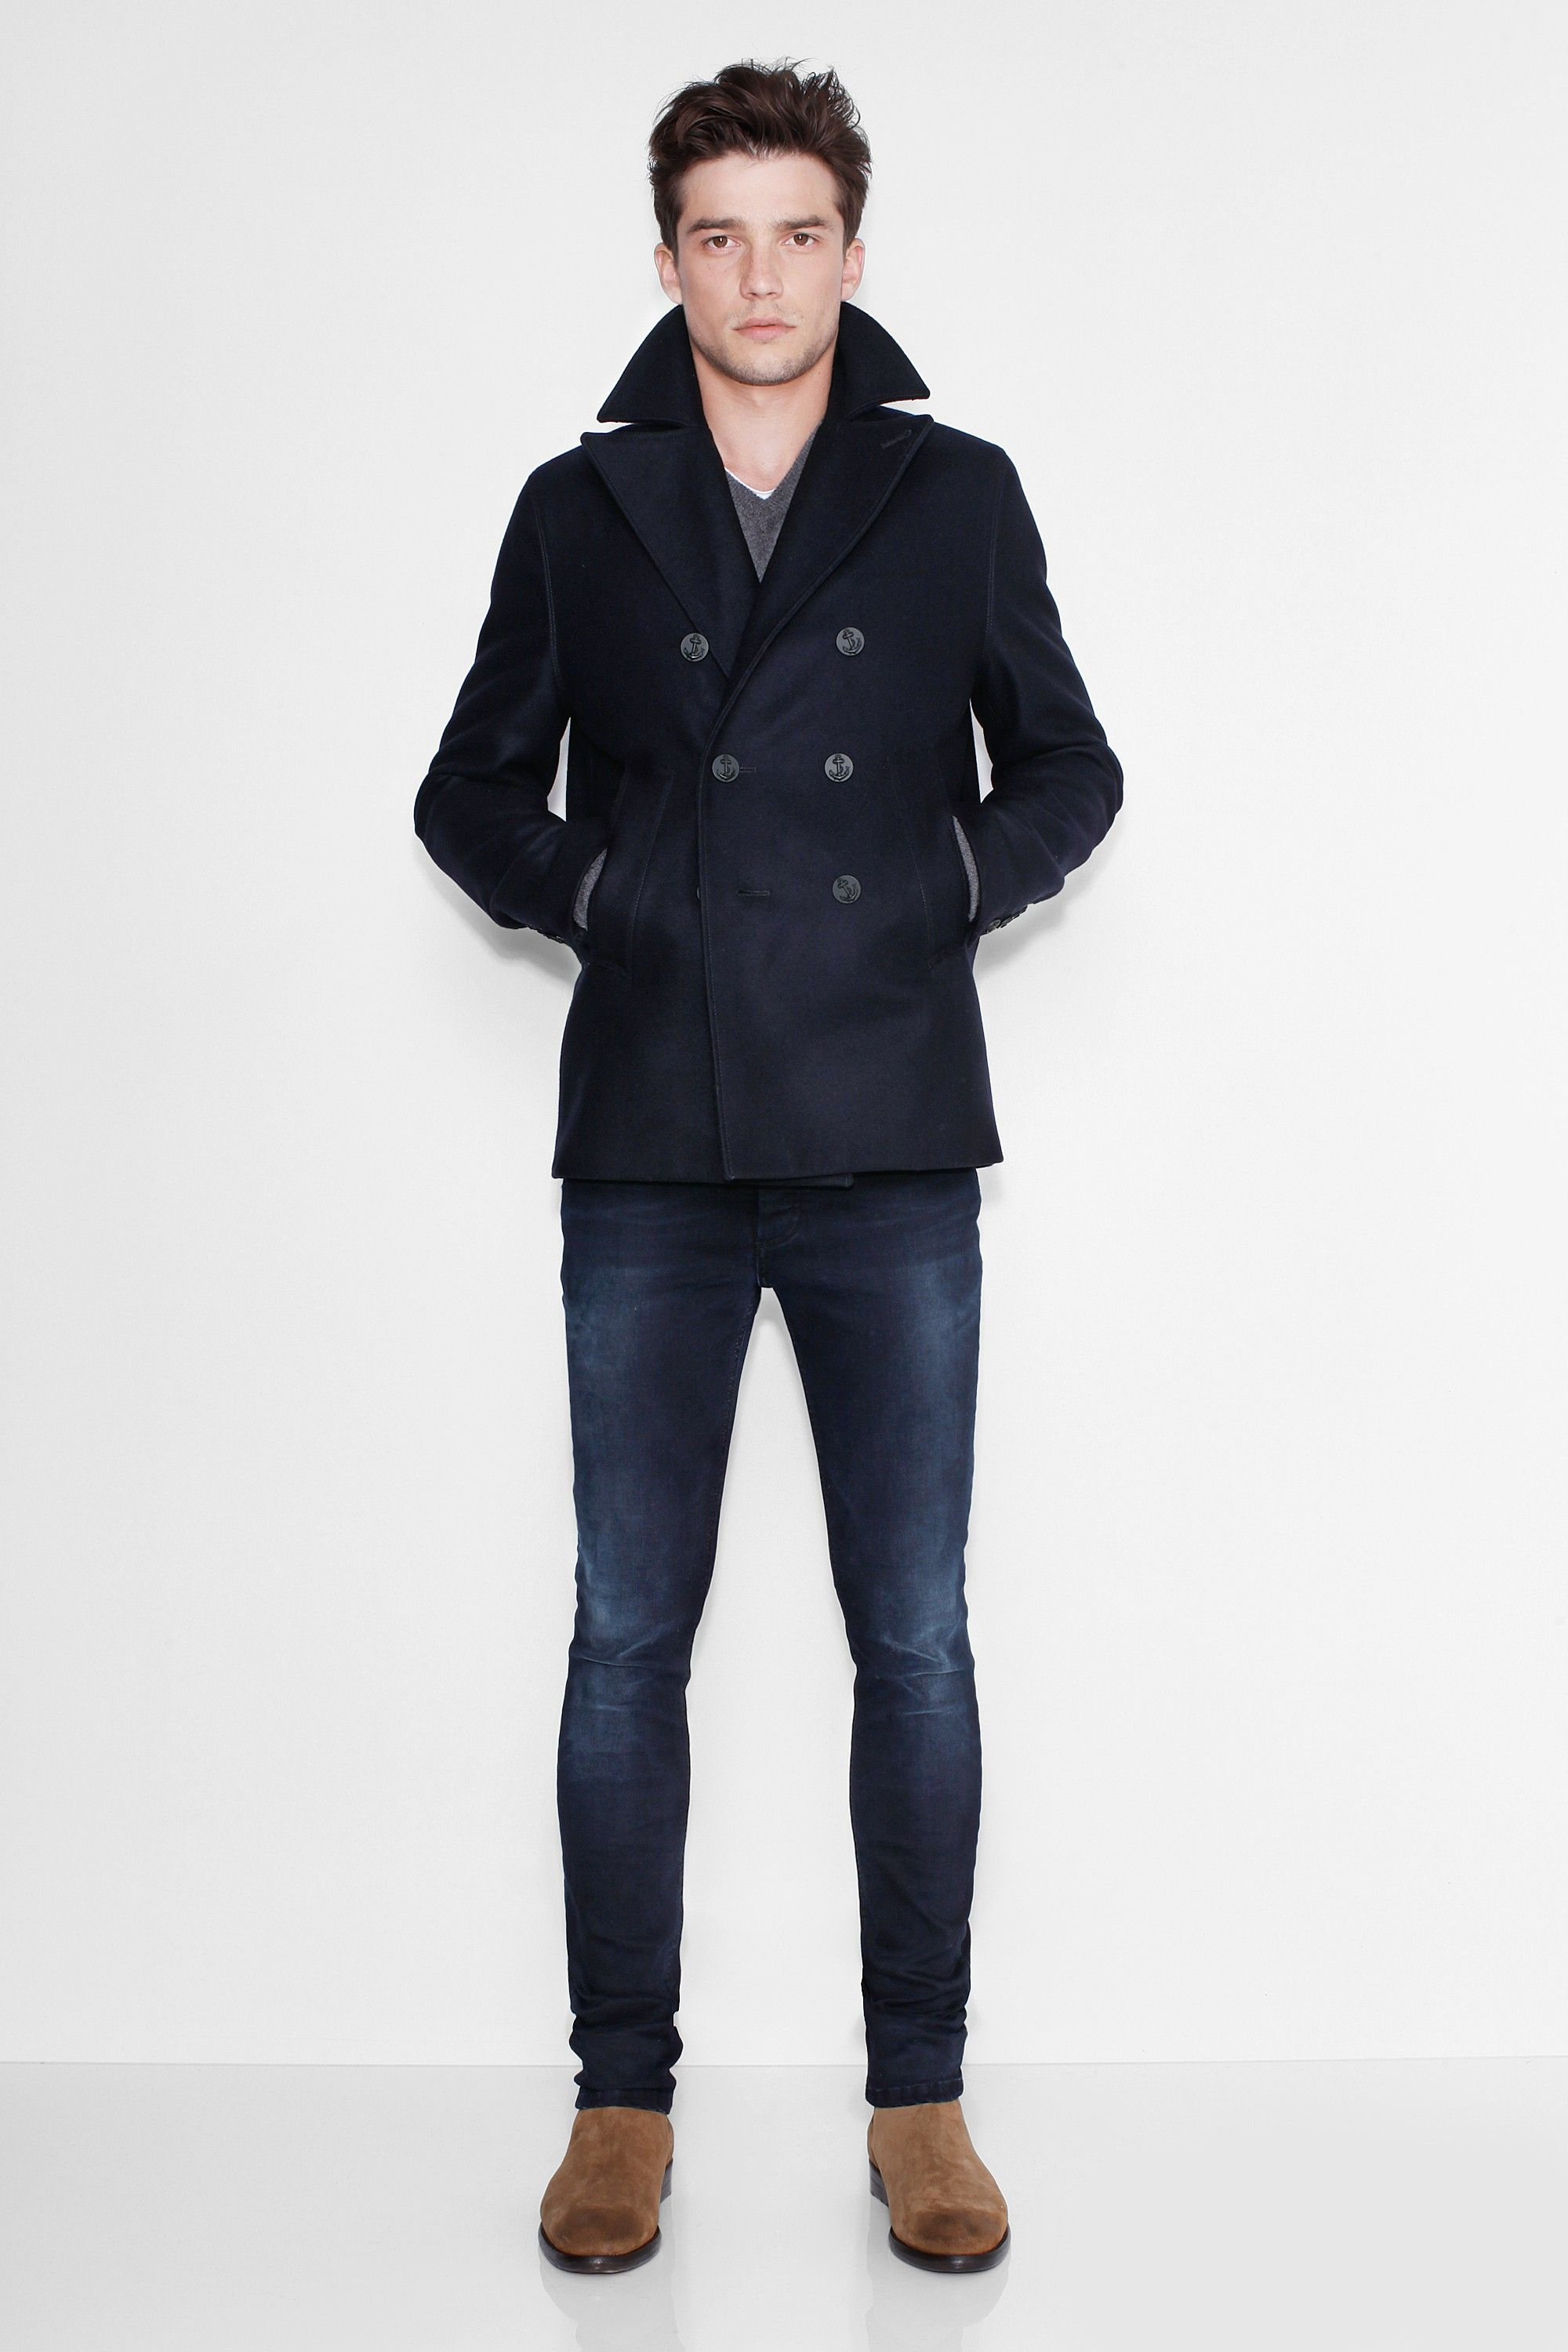 Zadig et Voltaire peacoat, with raw edges finishings, double breasted, two side pockets, 80% virgin wool, 20% polyamide. Quilted nylon removable waistcoat.